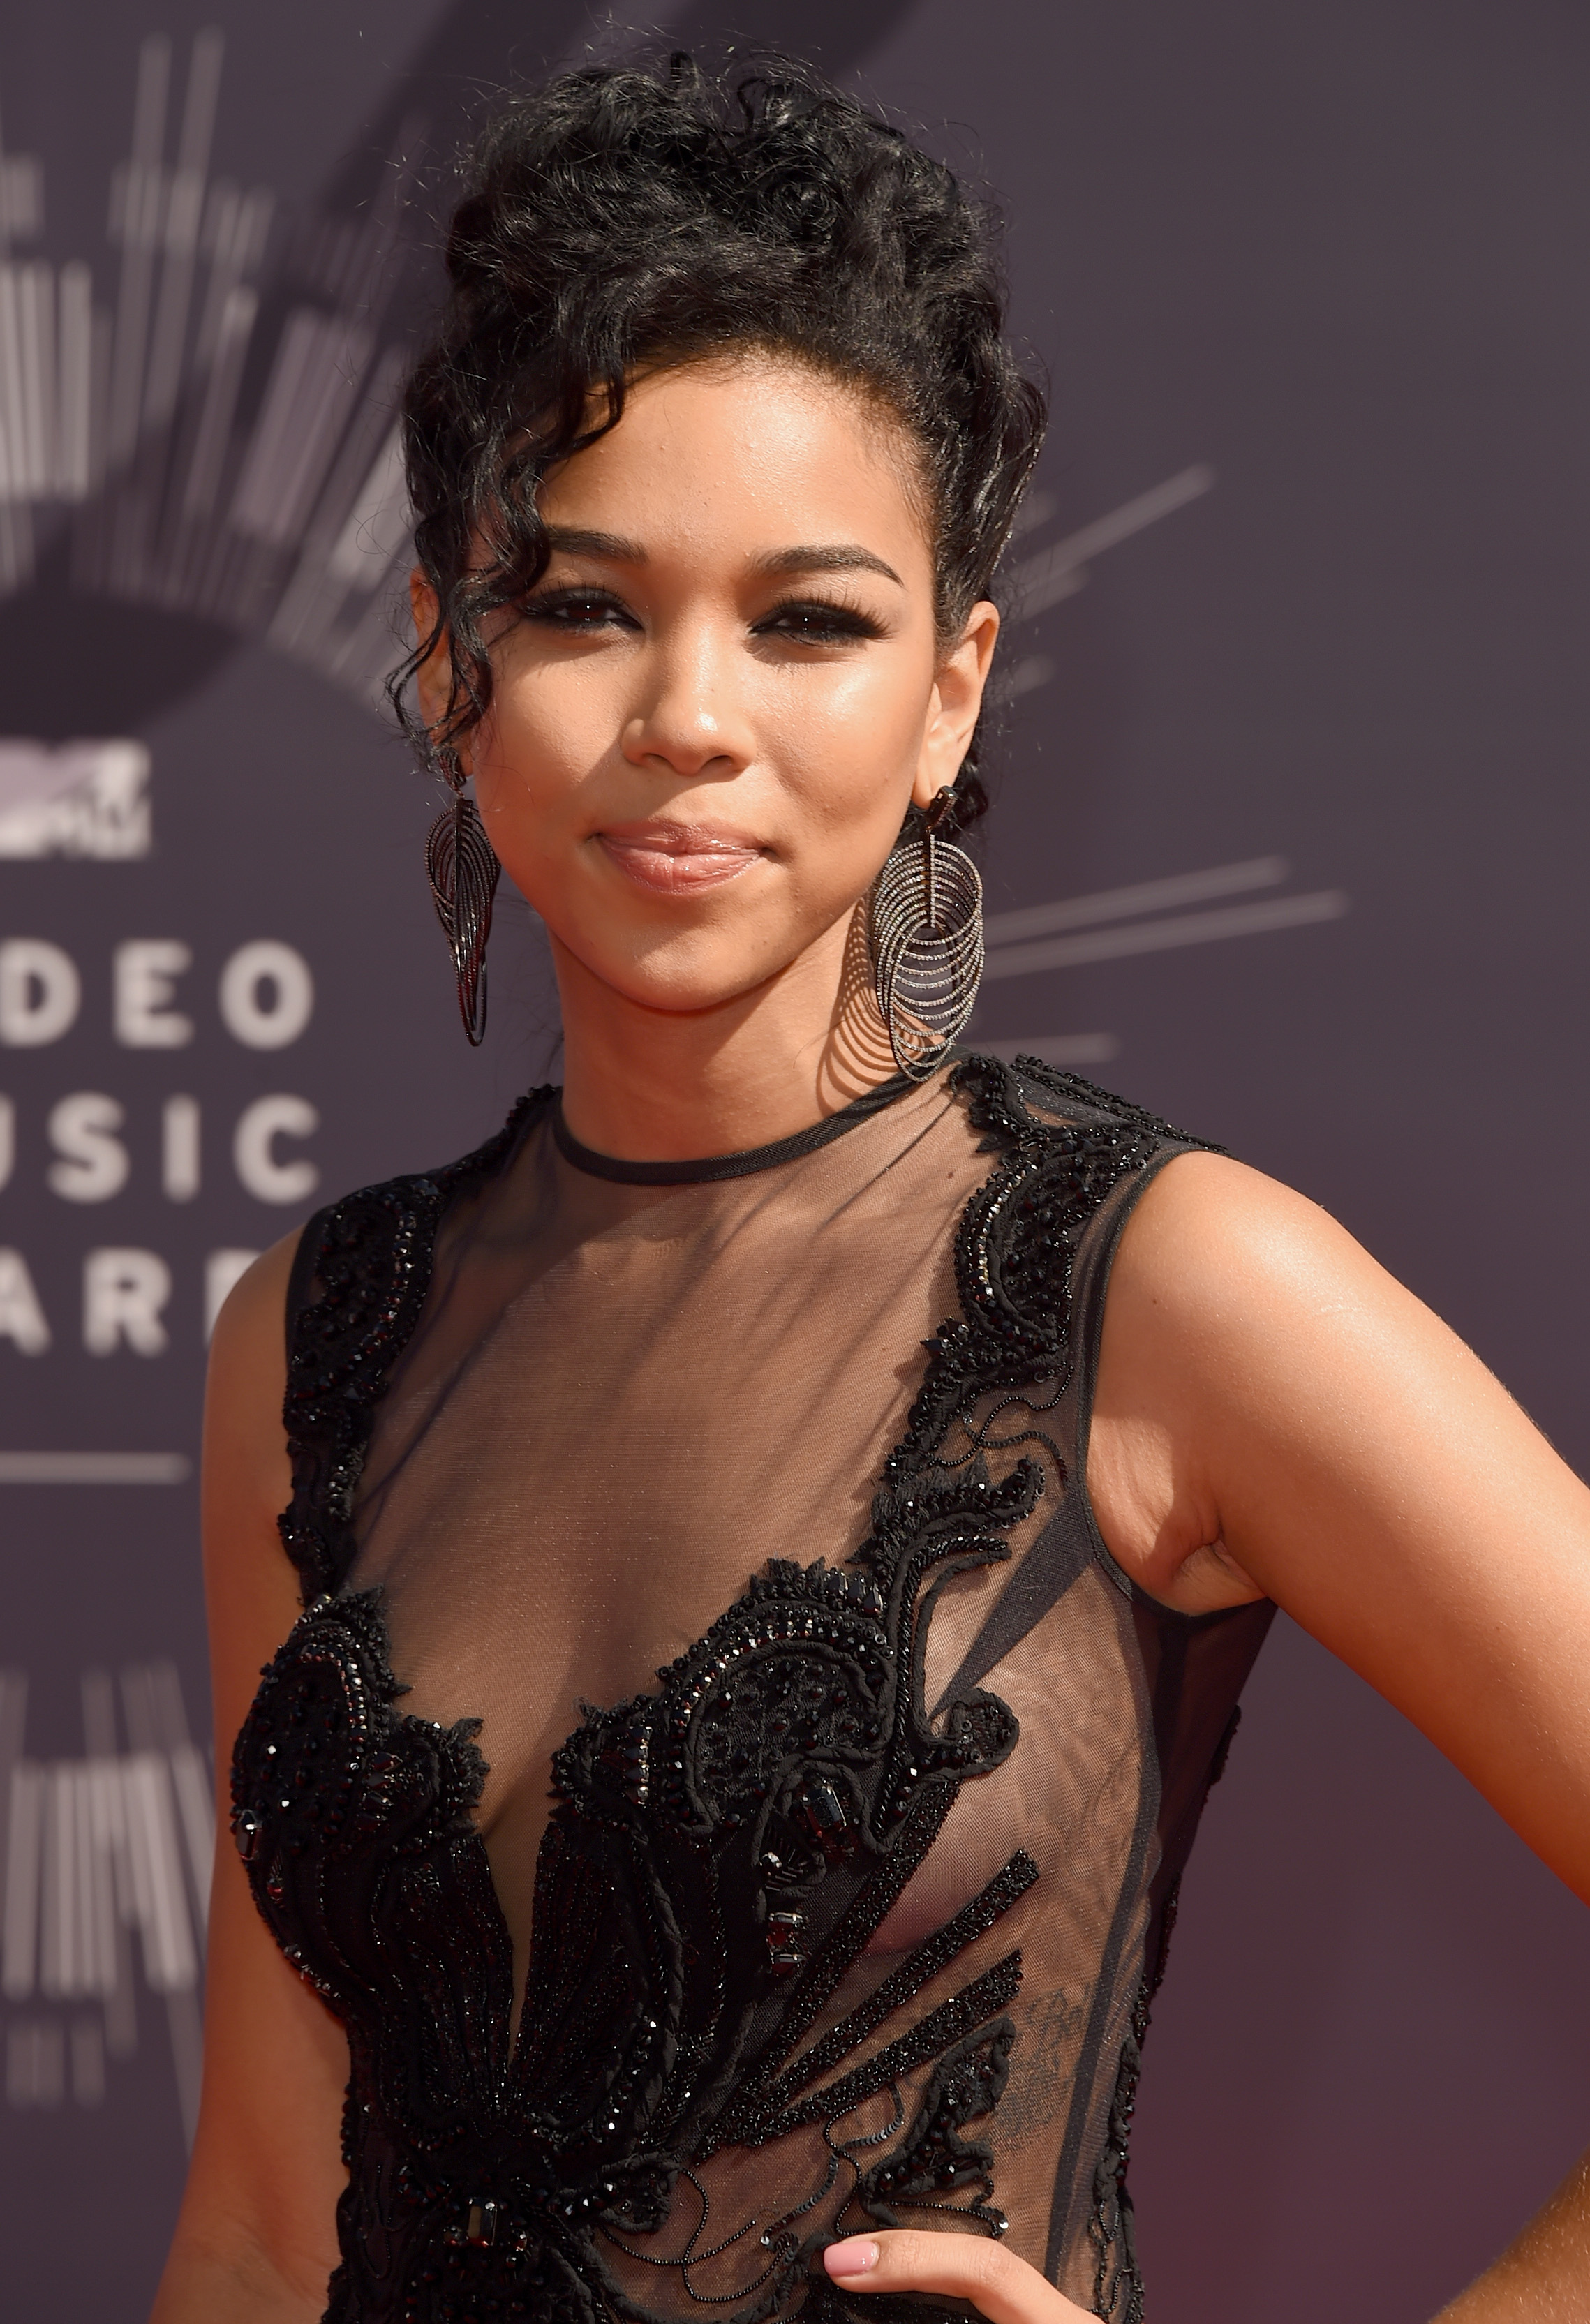 Alexandra Shipp attends the 2014 MTV Video Music Awards at The Forum on August 24, 2014 in Inglewood, California.